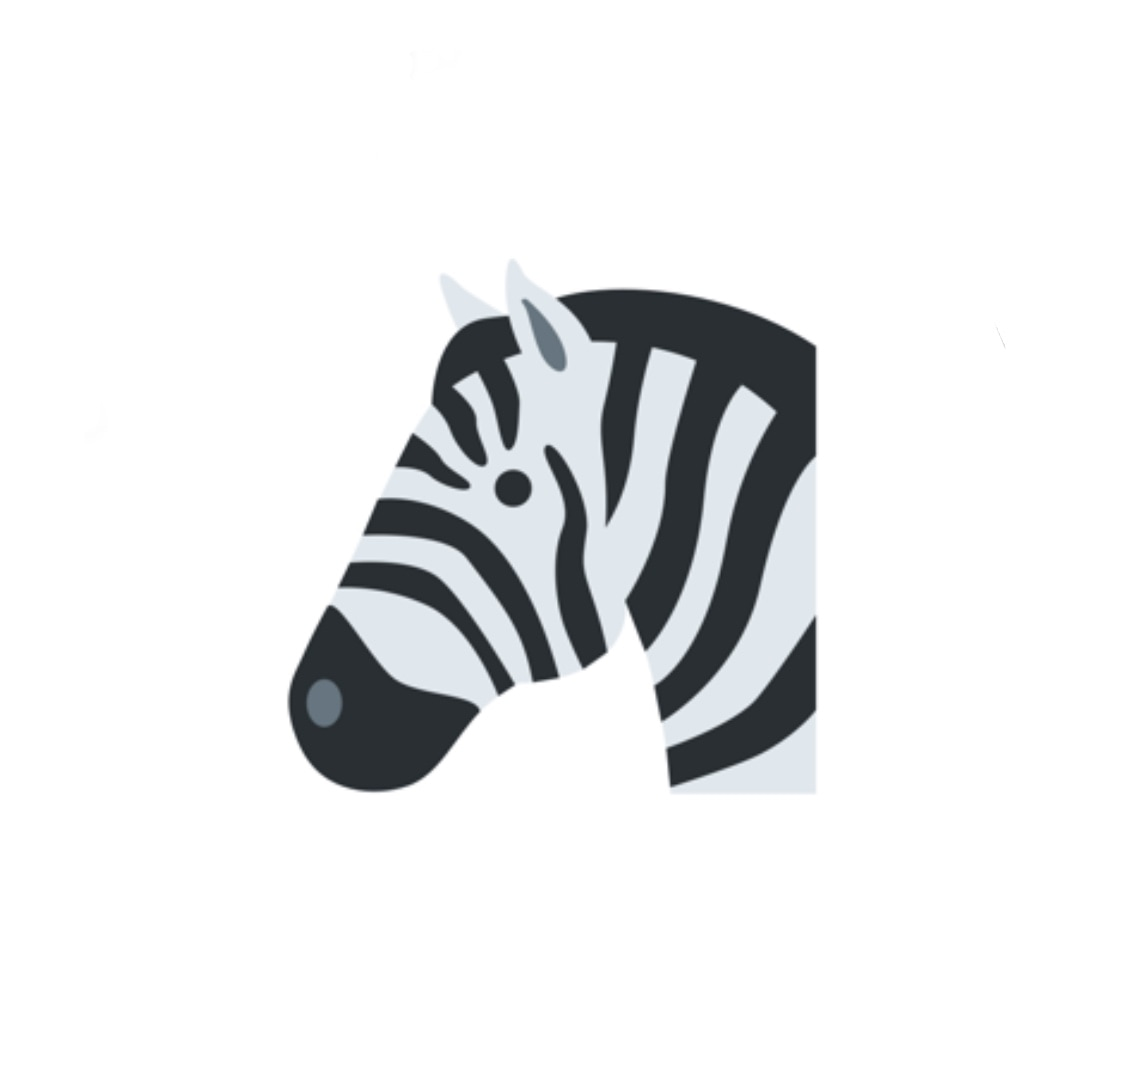 Zebra v1.0.5 released with more bug fixes and improvements